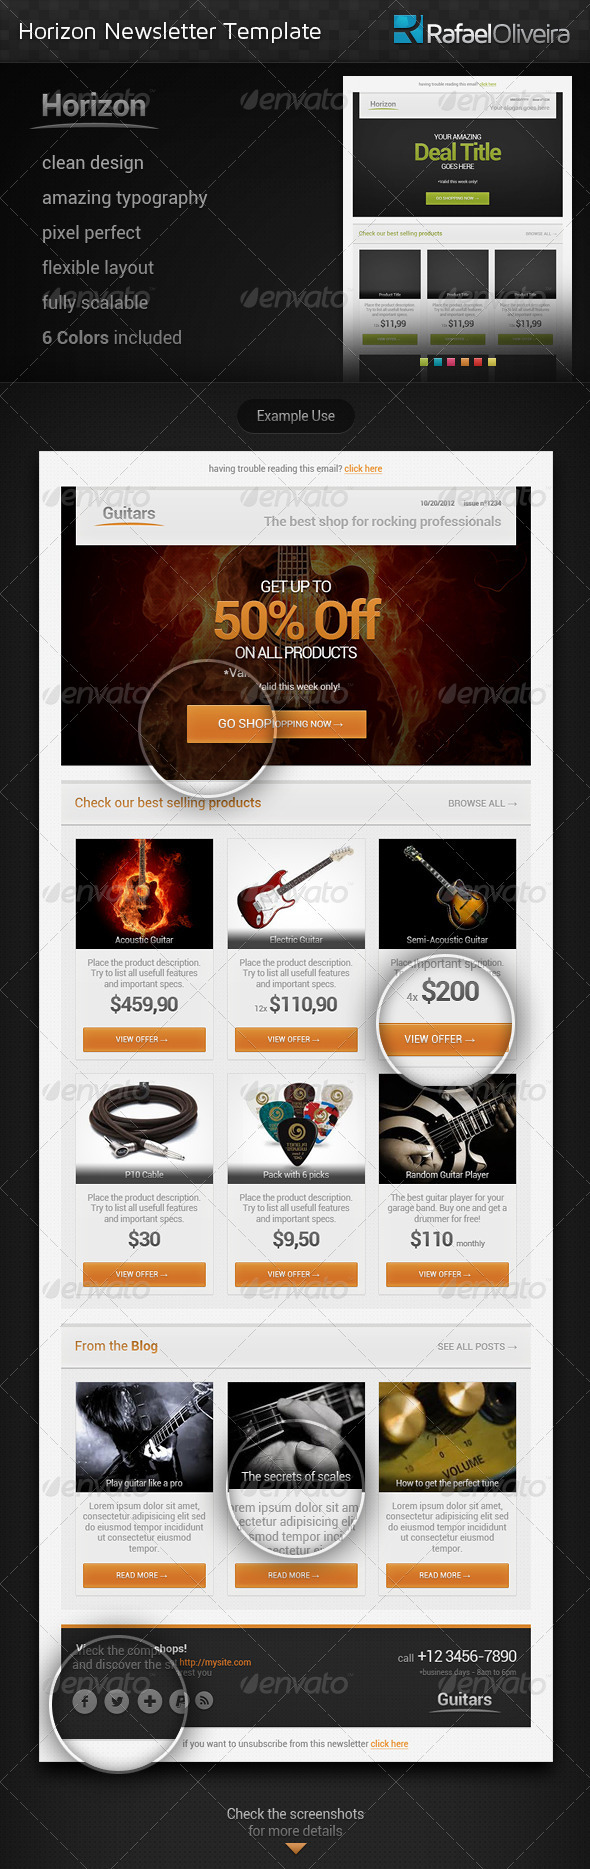 GraphicRiver Horizon Newsletter Template 3260686